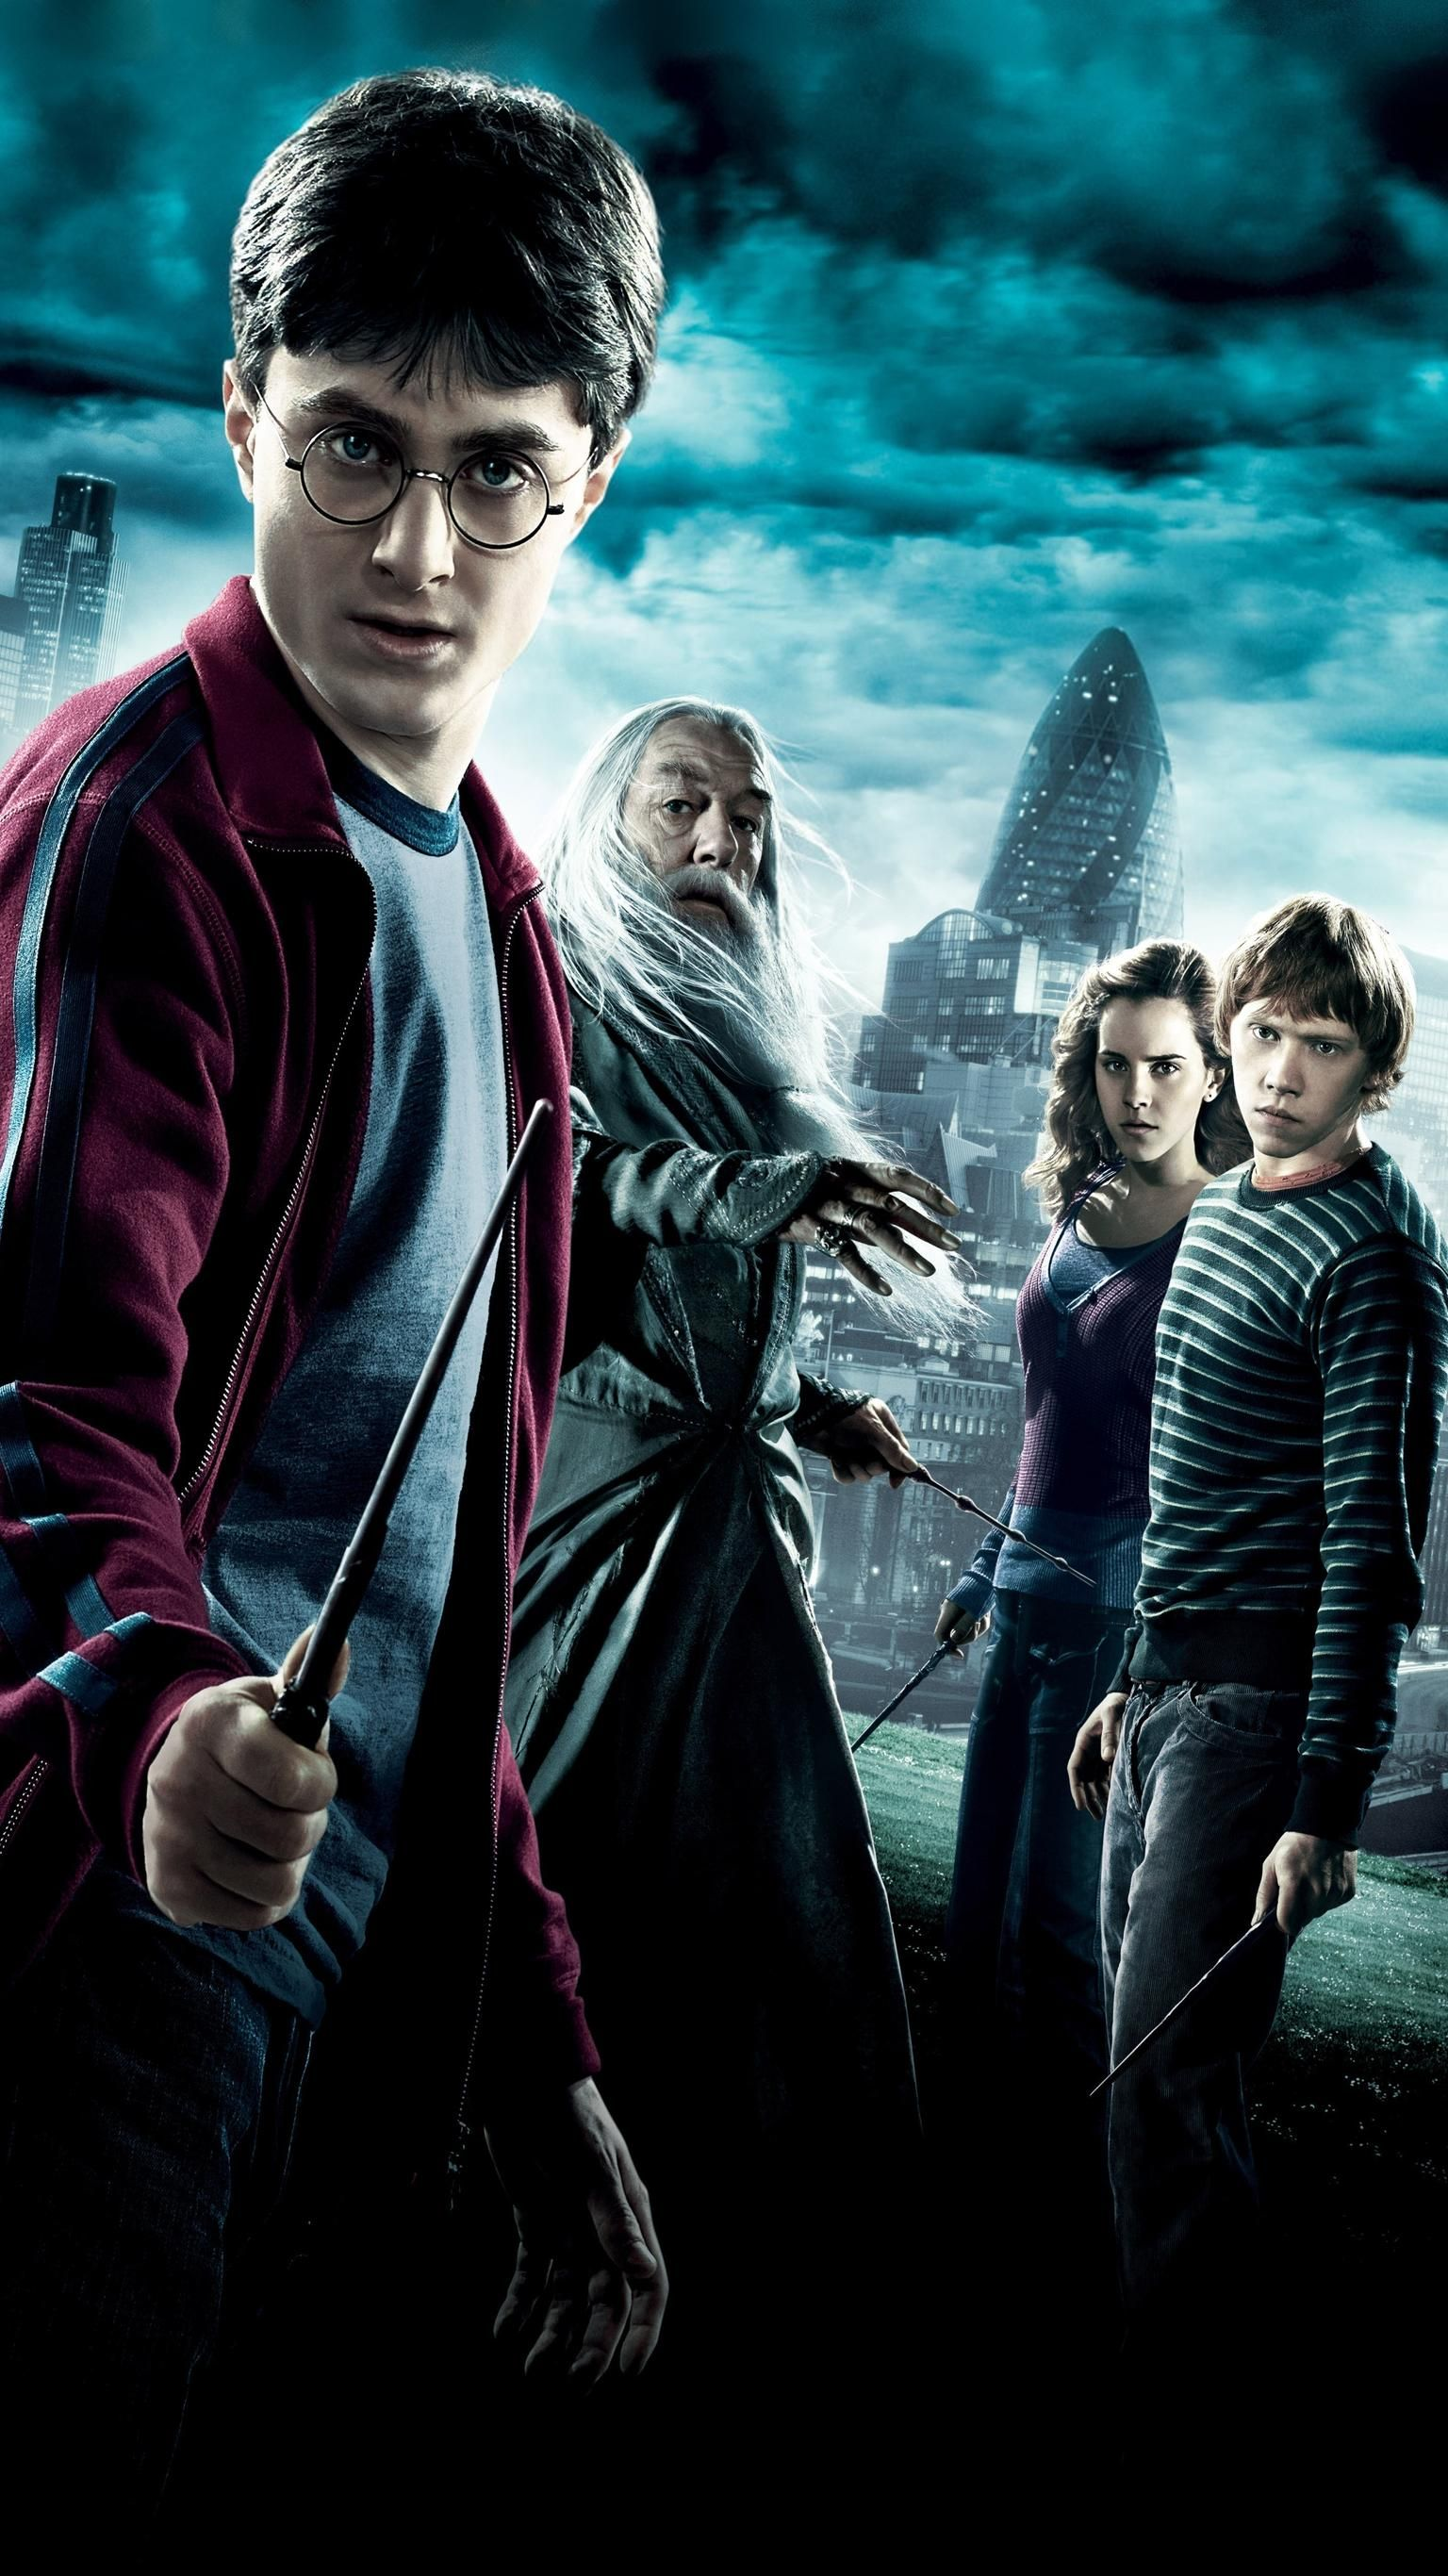 harry potter and the half-blood prince (2009) phone wallpaper in